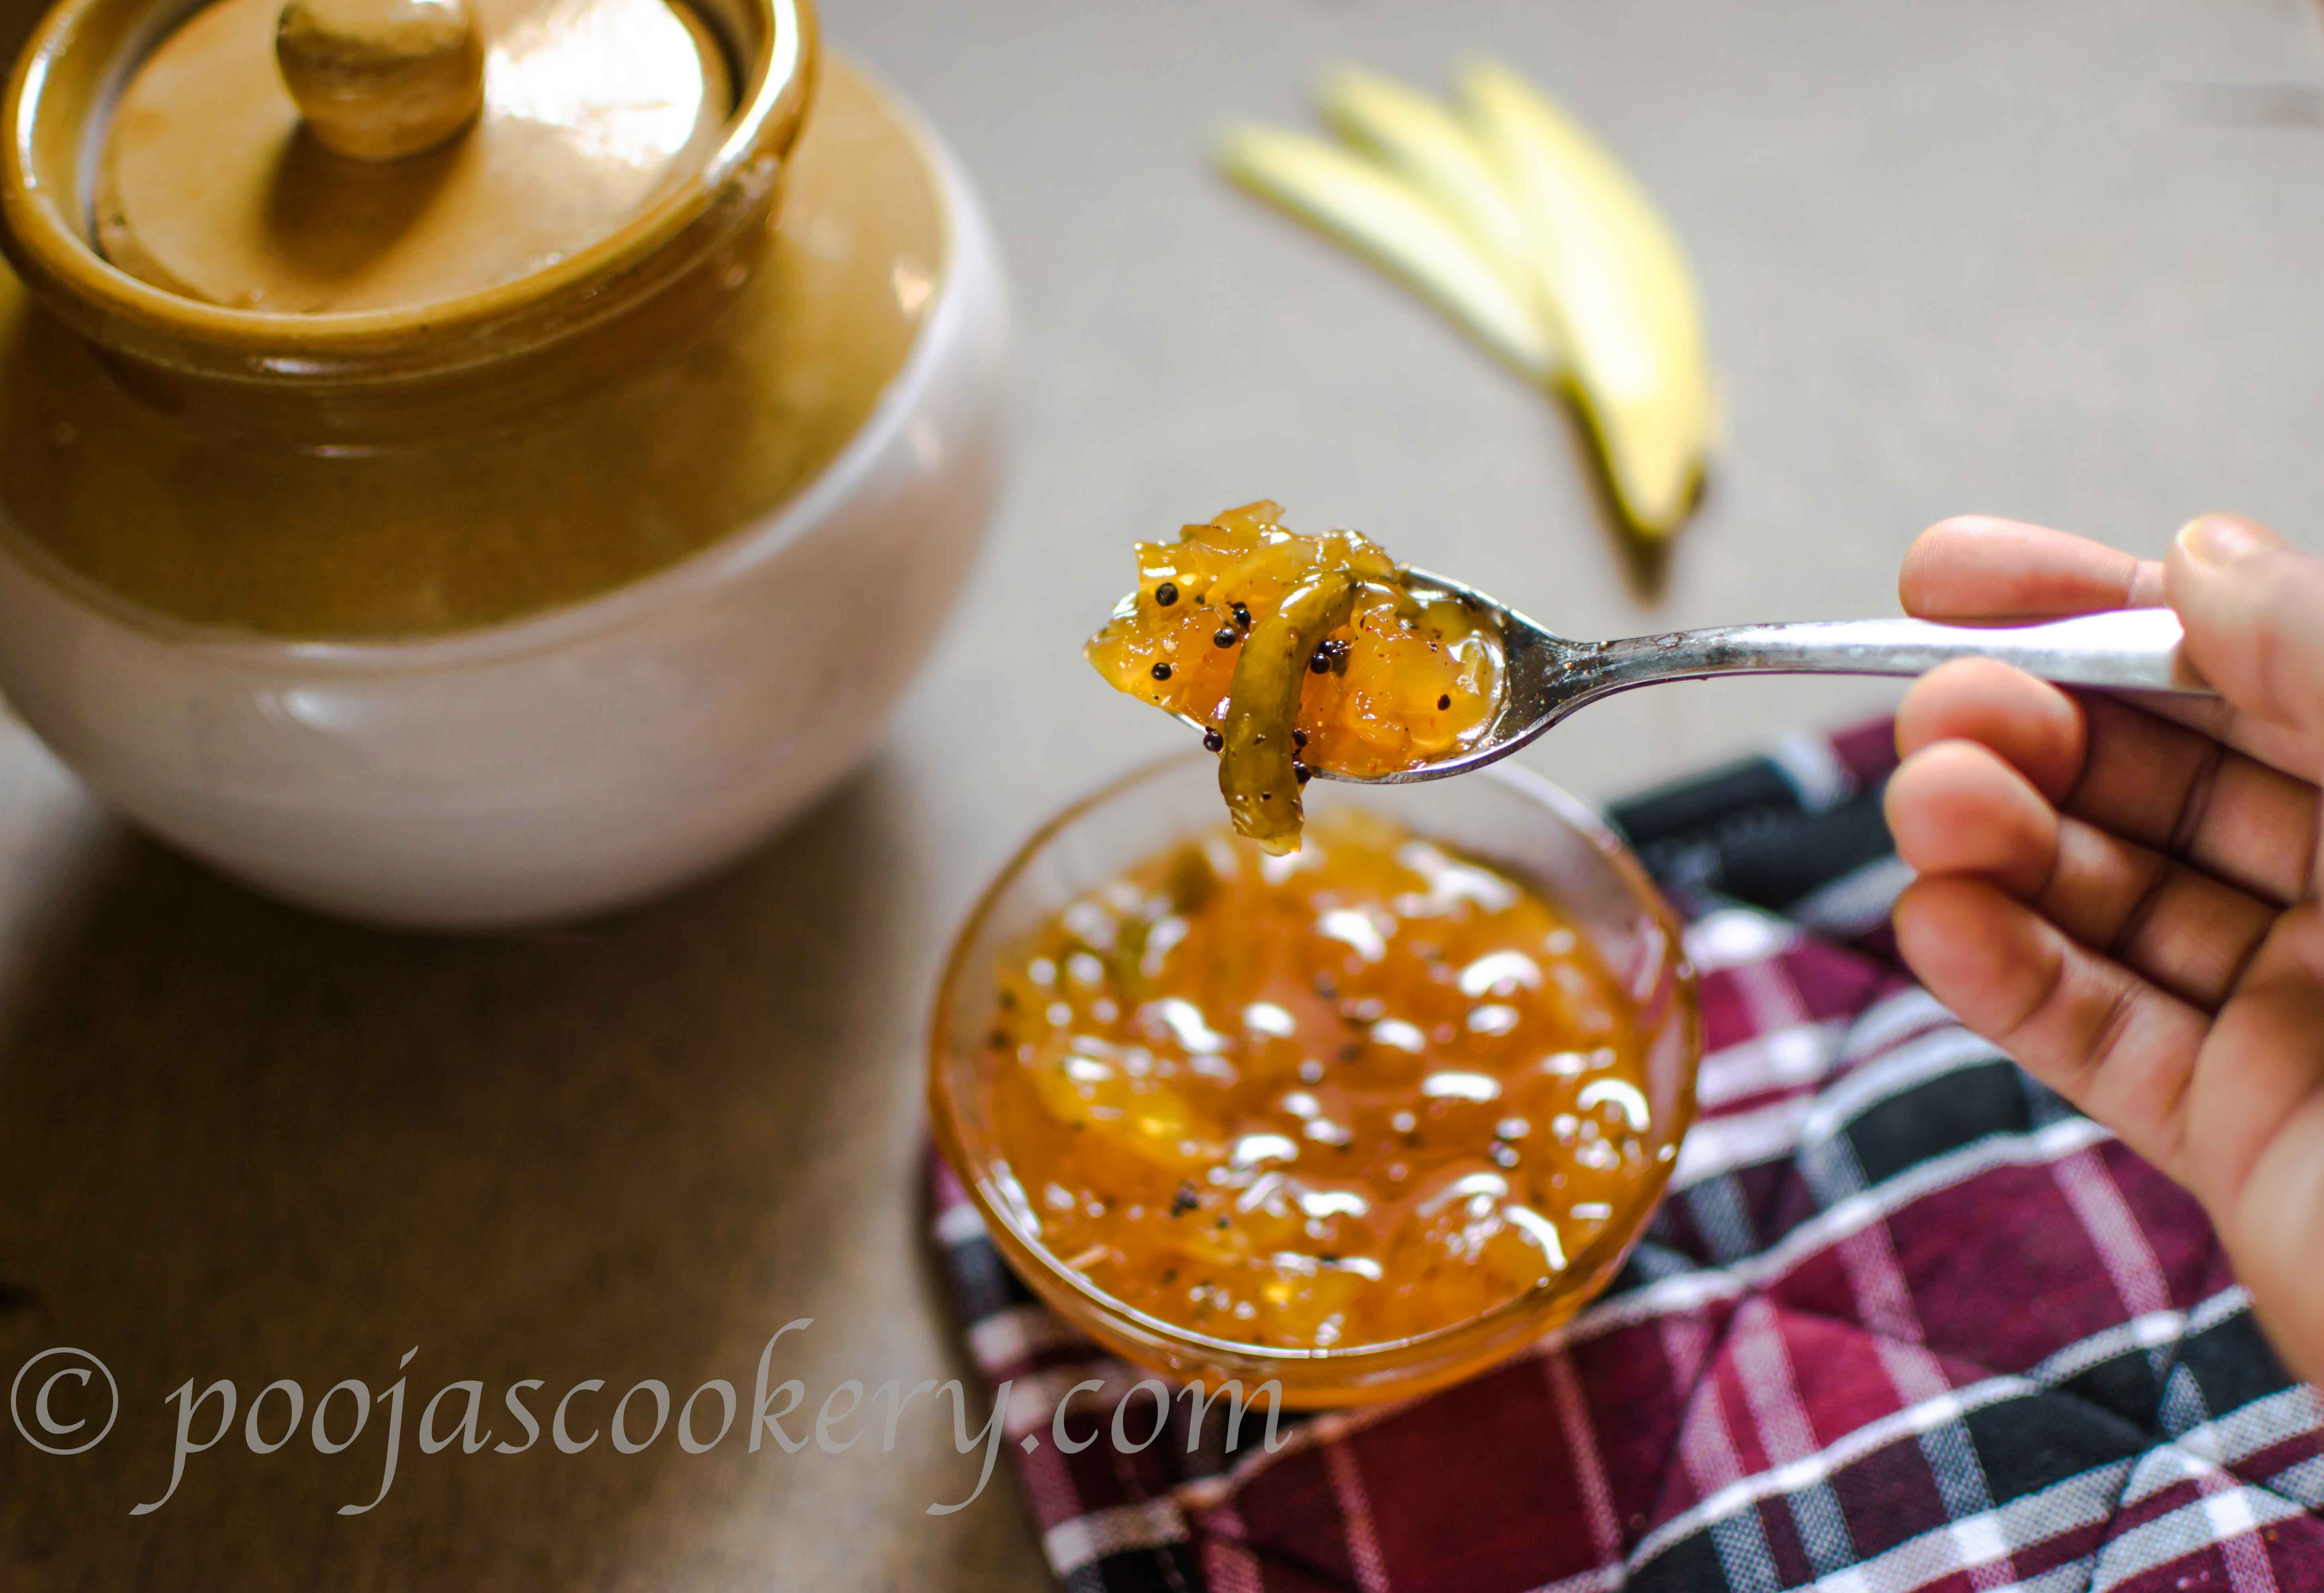 Kairiche god lonche/Raw Mango sweet & Sour pickle|poojascookery.com